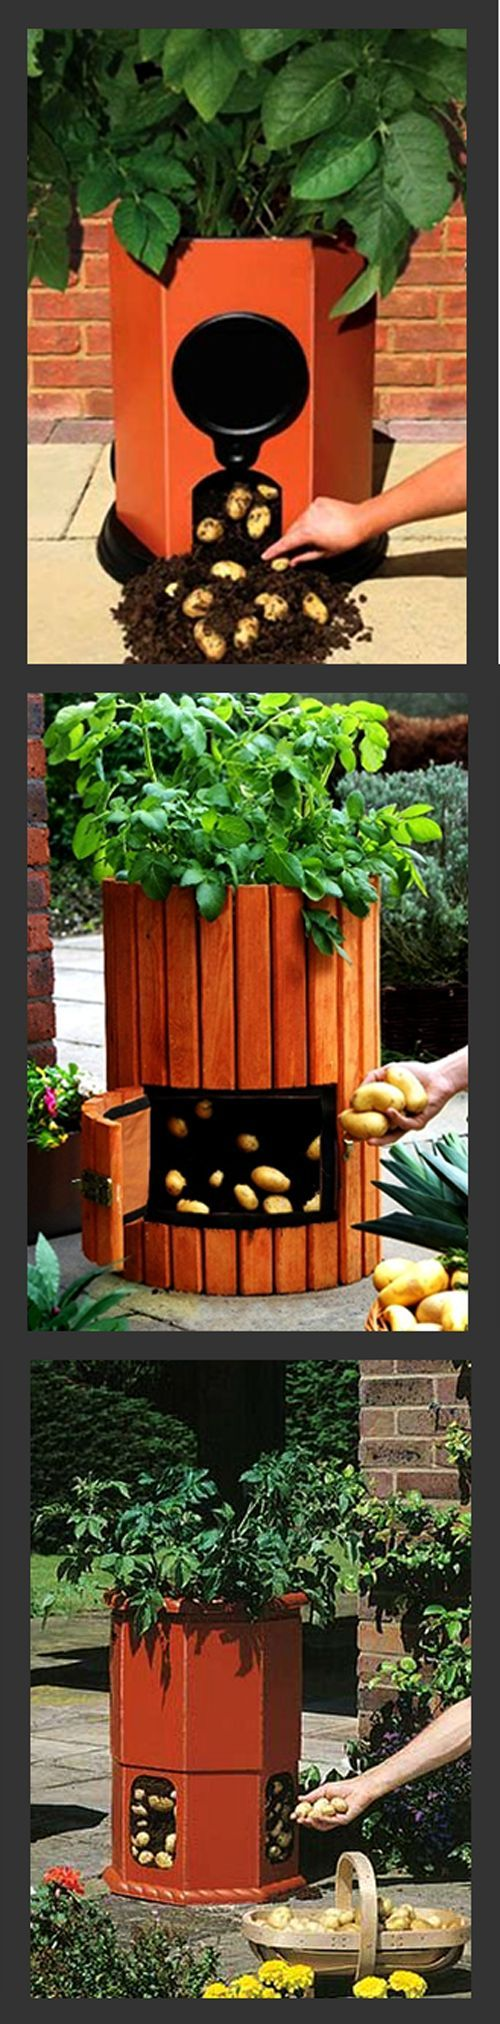 Potato growing made easy: